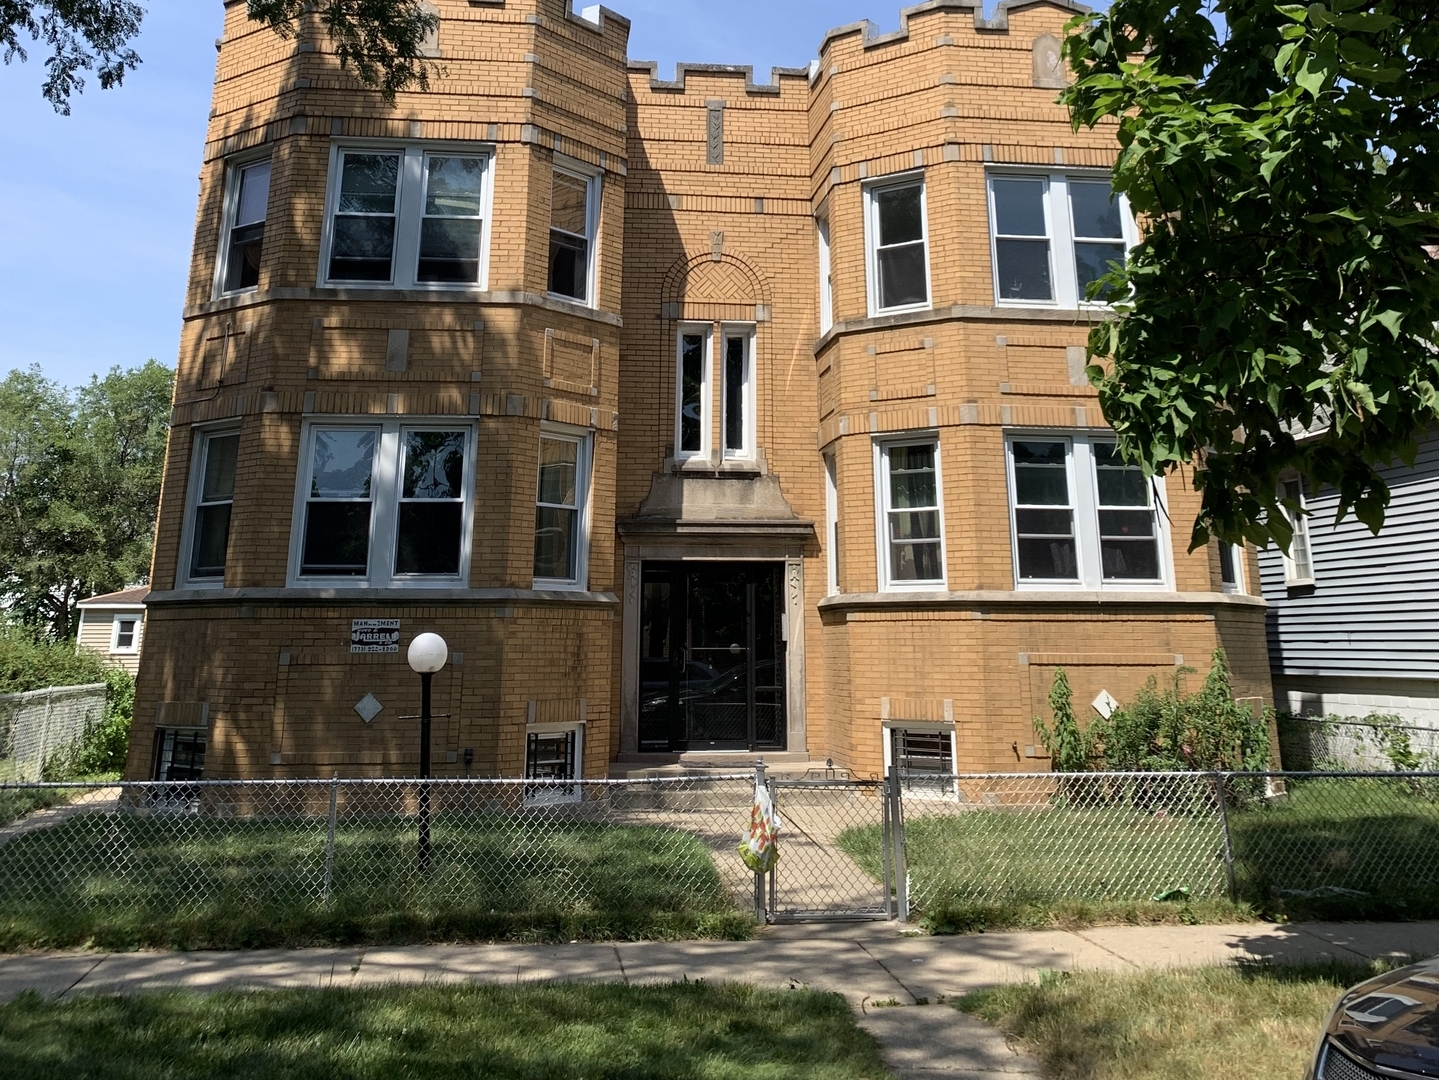 South Champlain Ave., Chicago, IL 60619